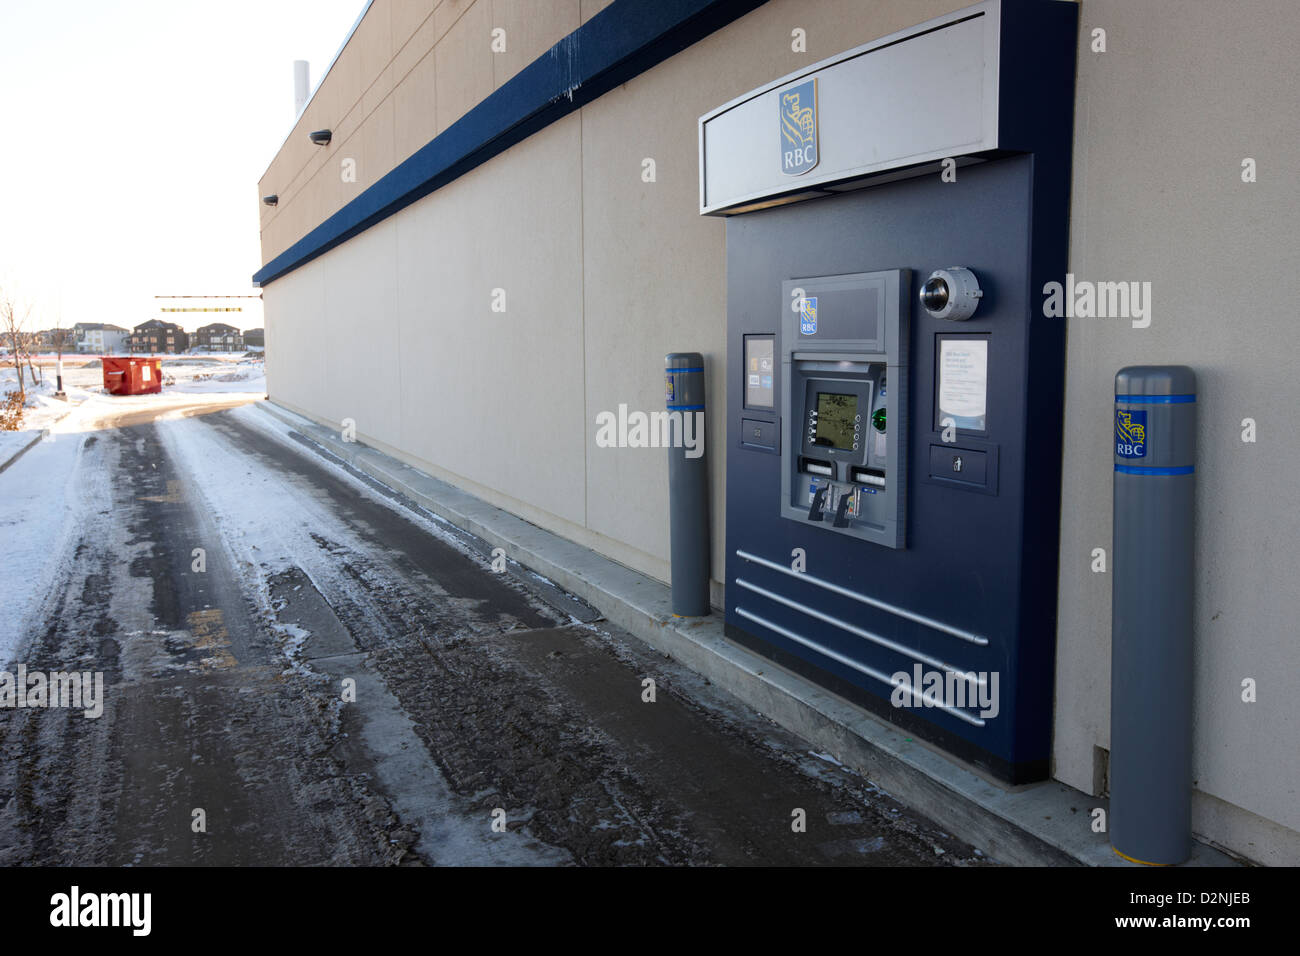 Drive Through Bank Stock Photos Images Wiring Money Rbc Atm Outside In Winter Saskatoon Saskatchewan Canada Image